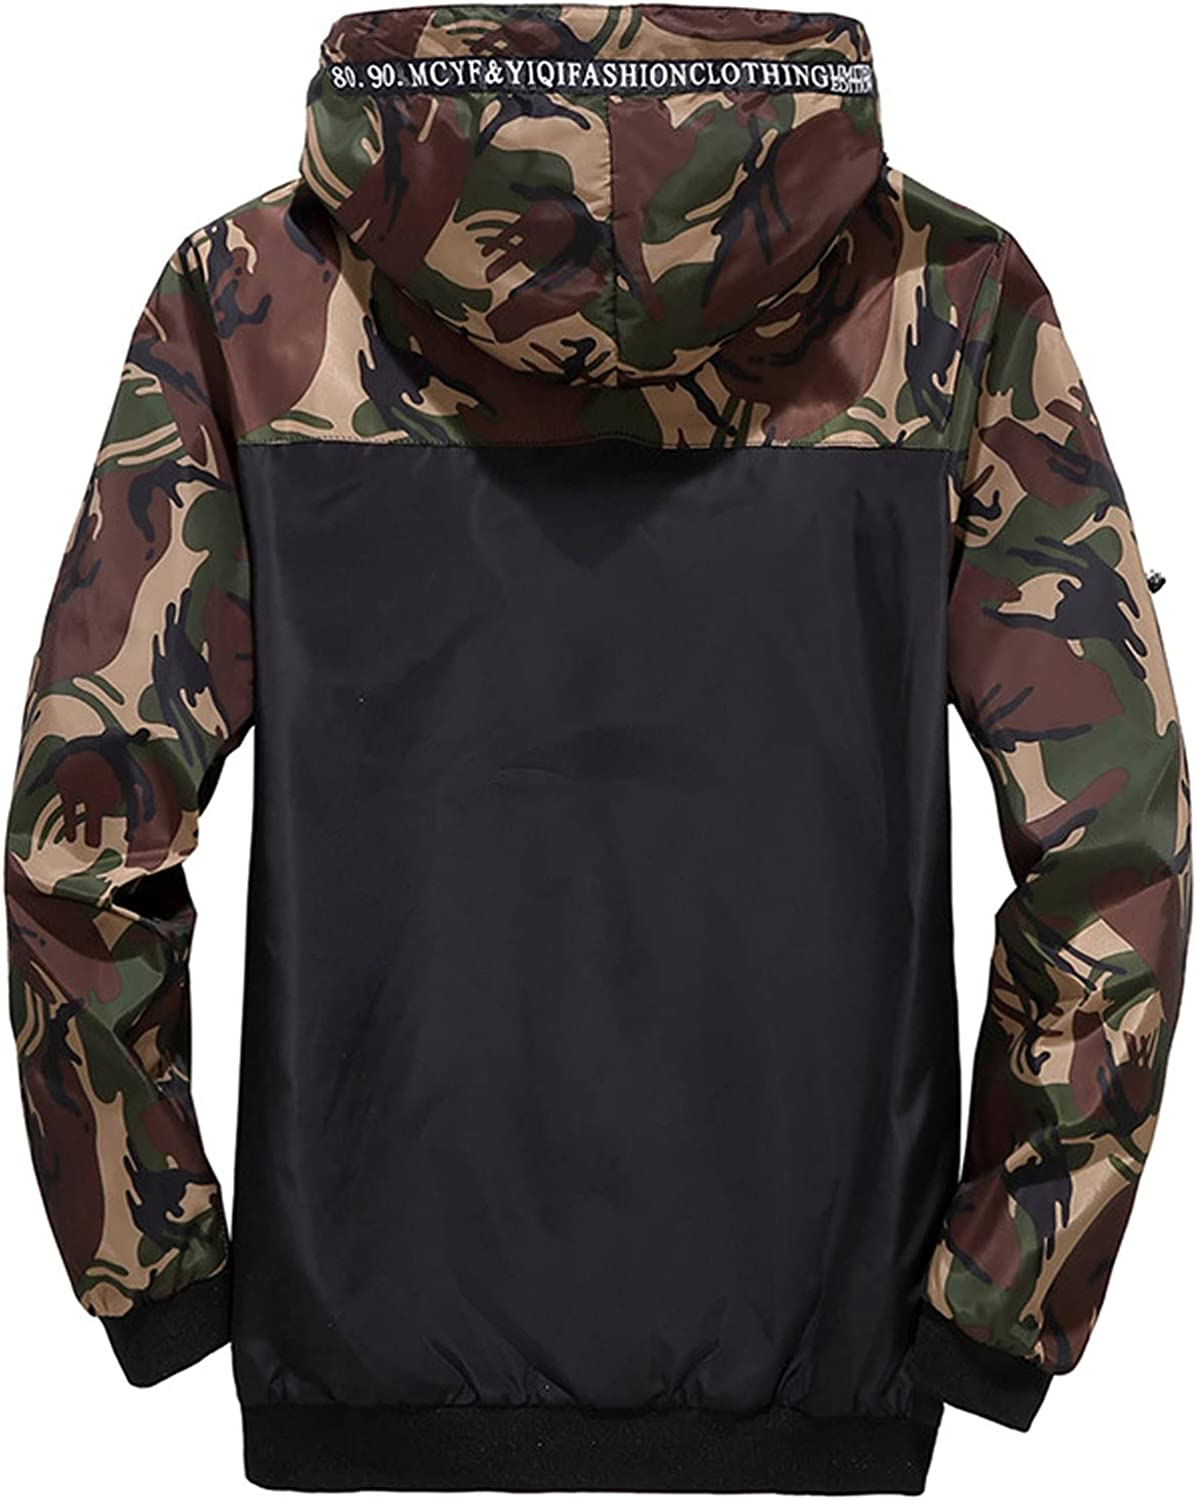 Men's Printed Jackets With Pocket, Camouflage print outdoor Fashion jacket V342